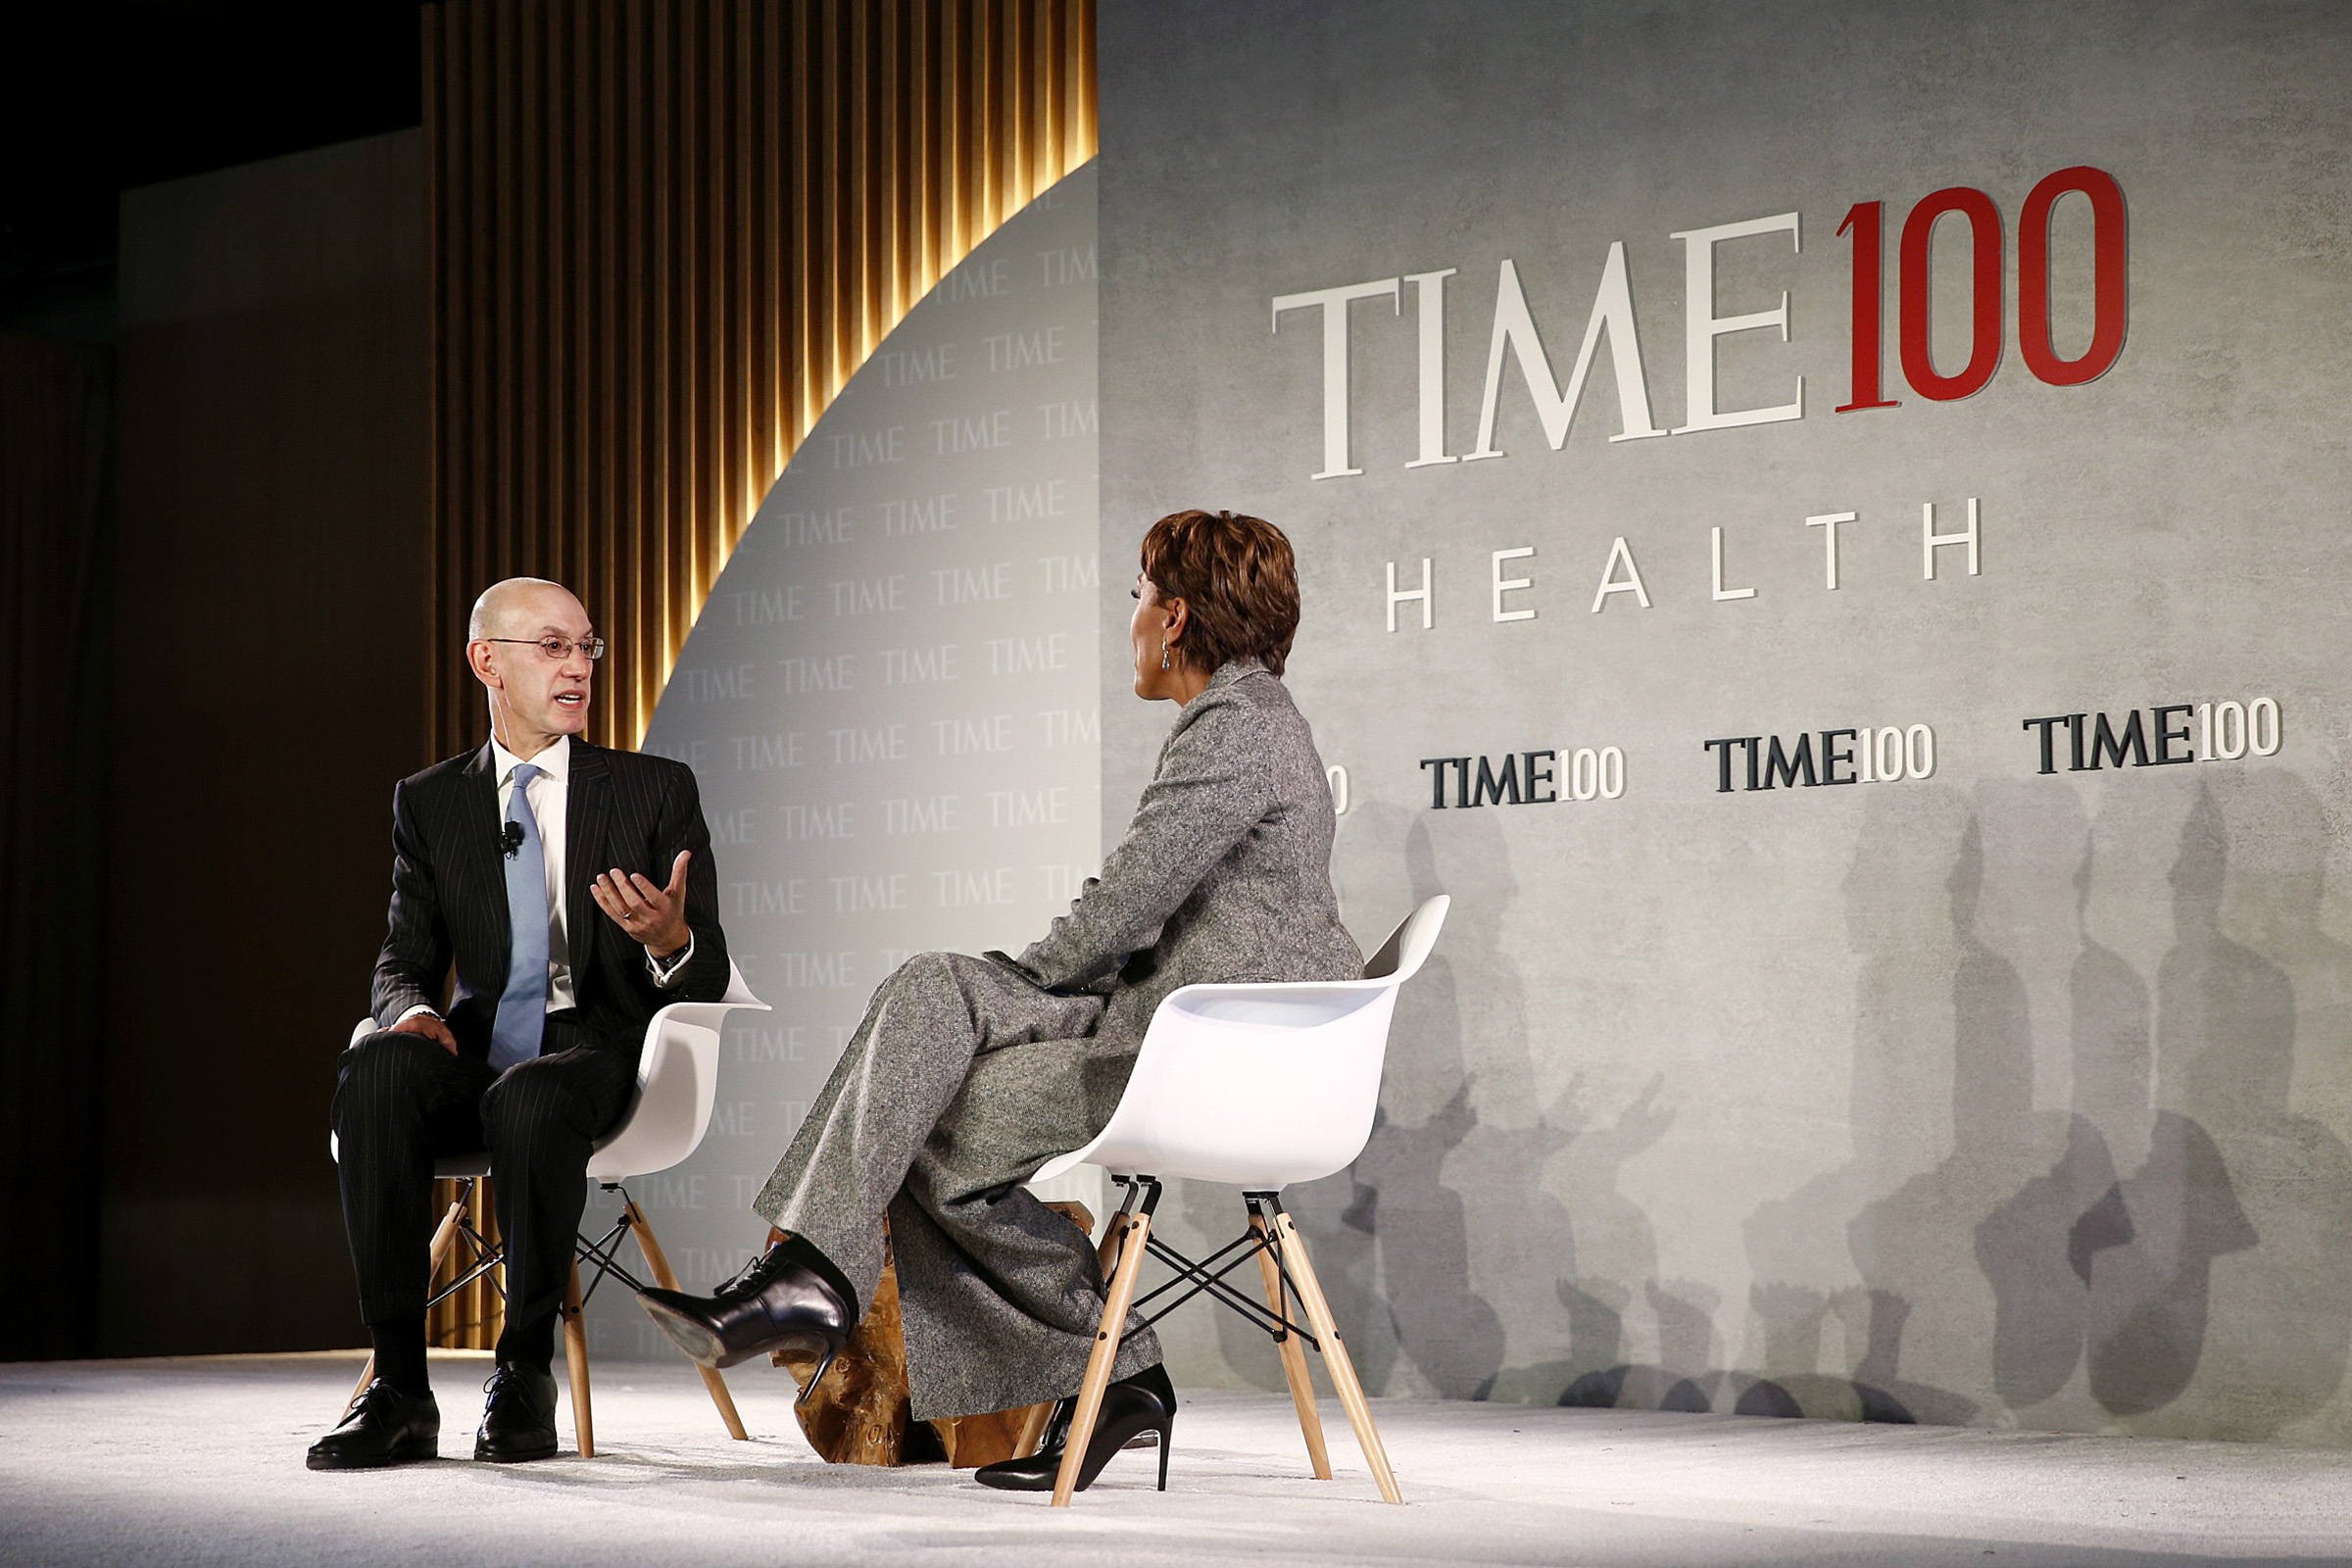 Commissioner of the NBA, Adam Silver (L) and broadcaster Robin Roberts speak onstage during the TIME 100 Health Summit at Pier 17 in New York City on Oct. 17, 2019.